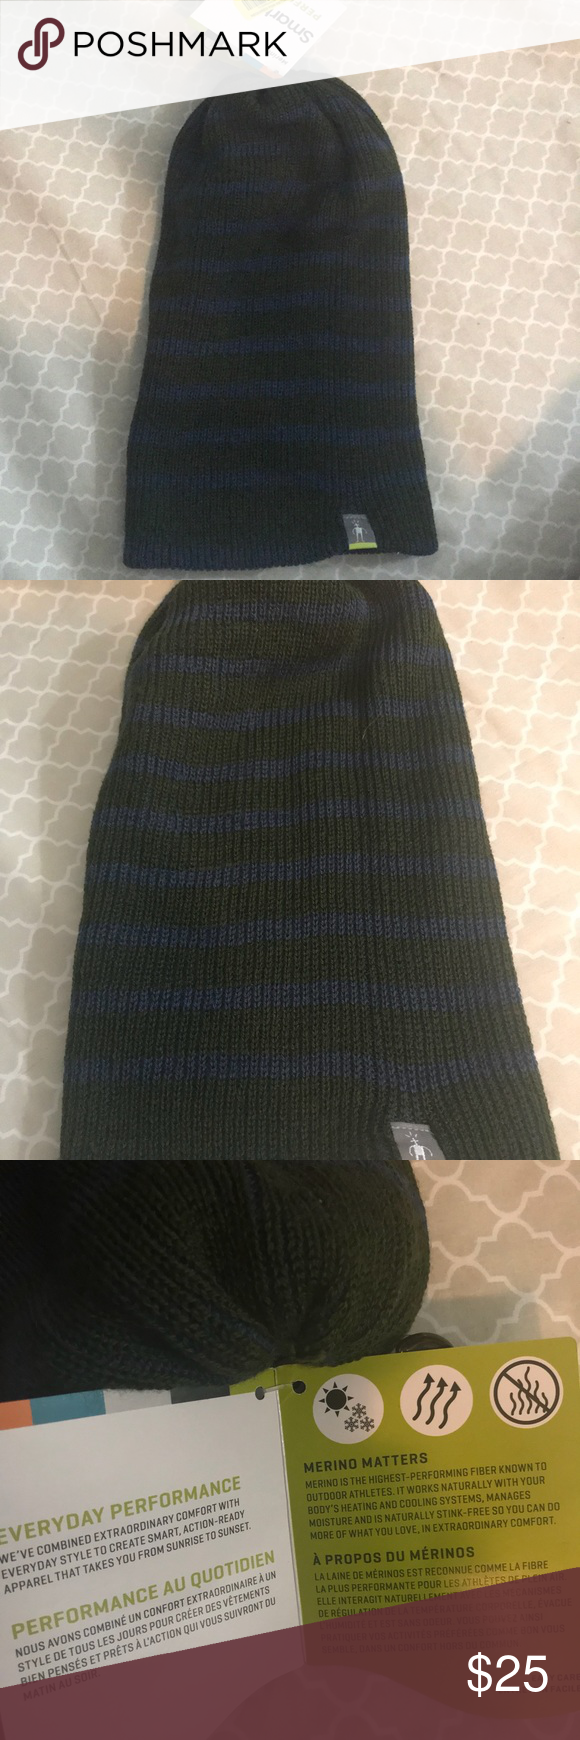 SmartWool Men s Winter Hat One Size New with tag slouch beanie hat from  Smartwool. Green   Blue striped It is made of 50% Acrylic and 50% wool. ac6df2799f1e